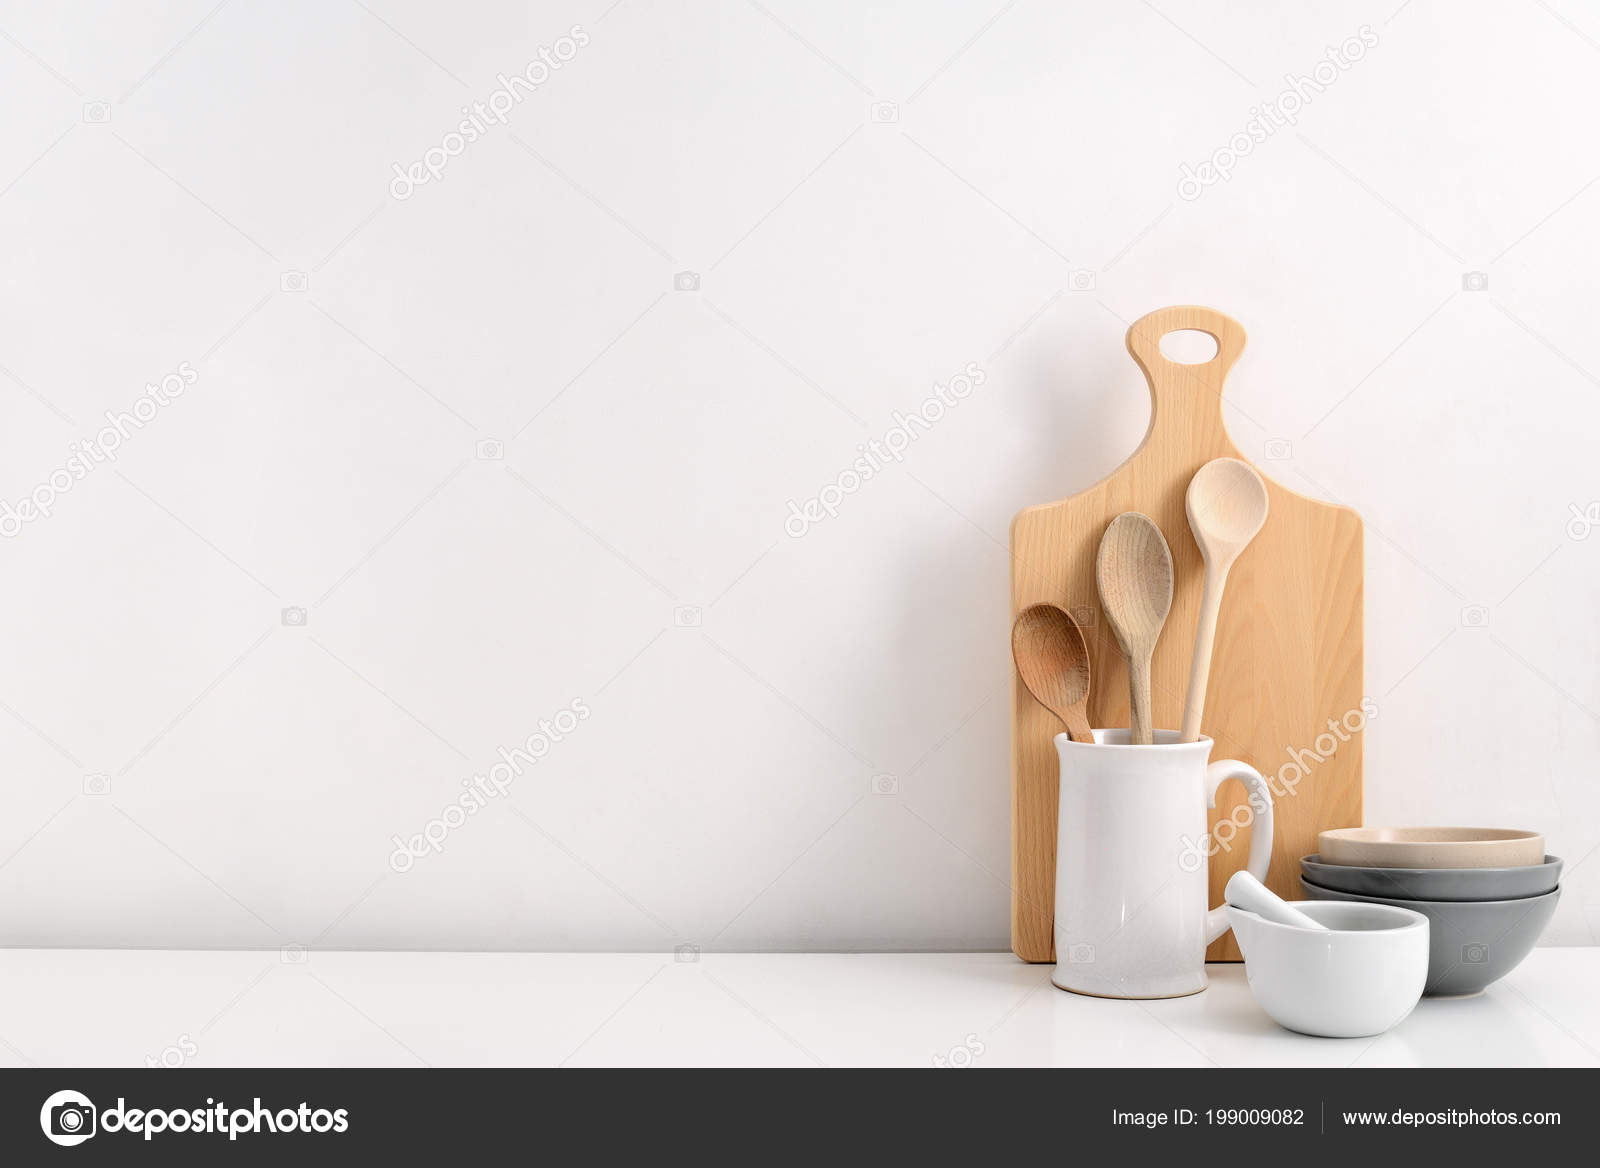 Kitchen Utensils Background Blank Space Text Home Kitchen Decor Concept U2014  Stock Photo